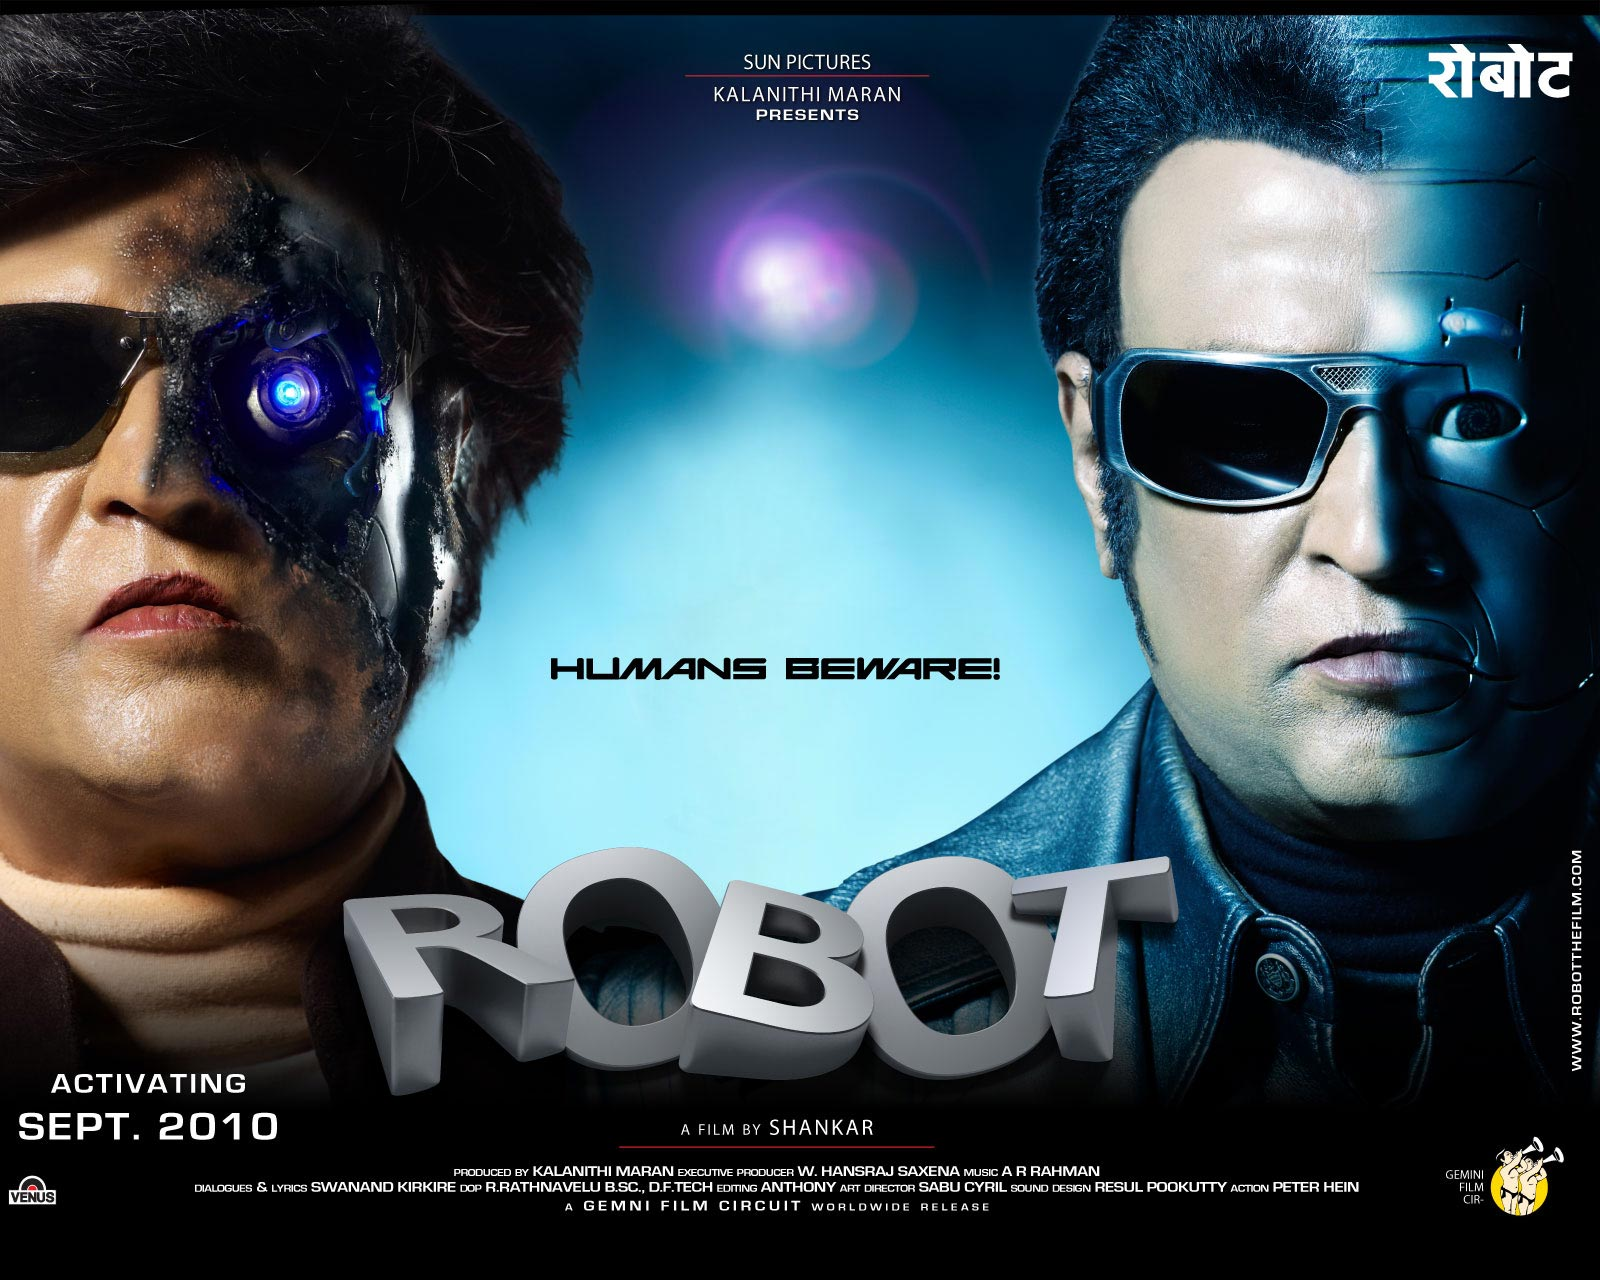 Cult films and the people who make them: Robot